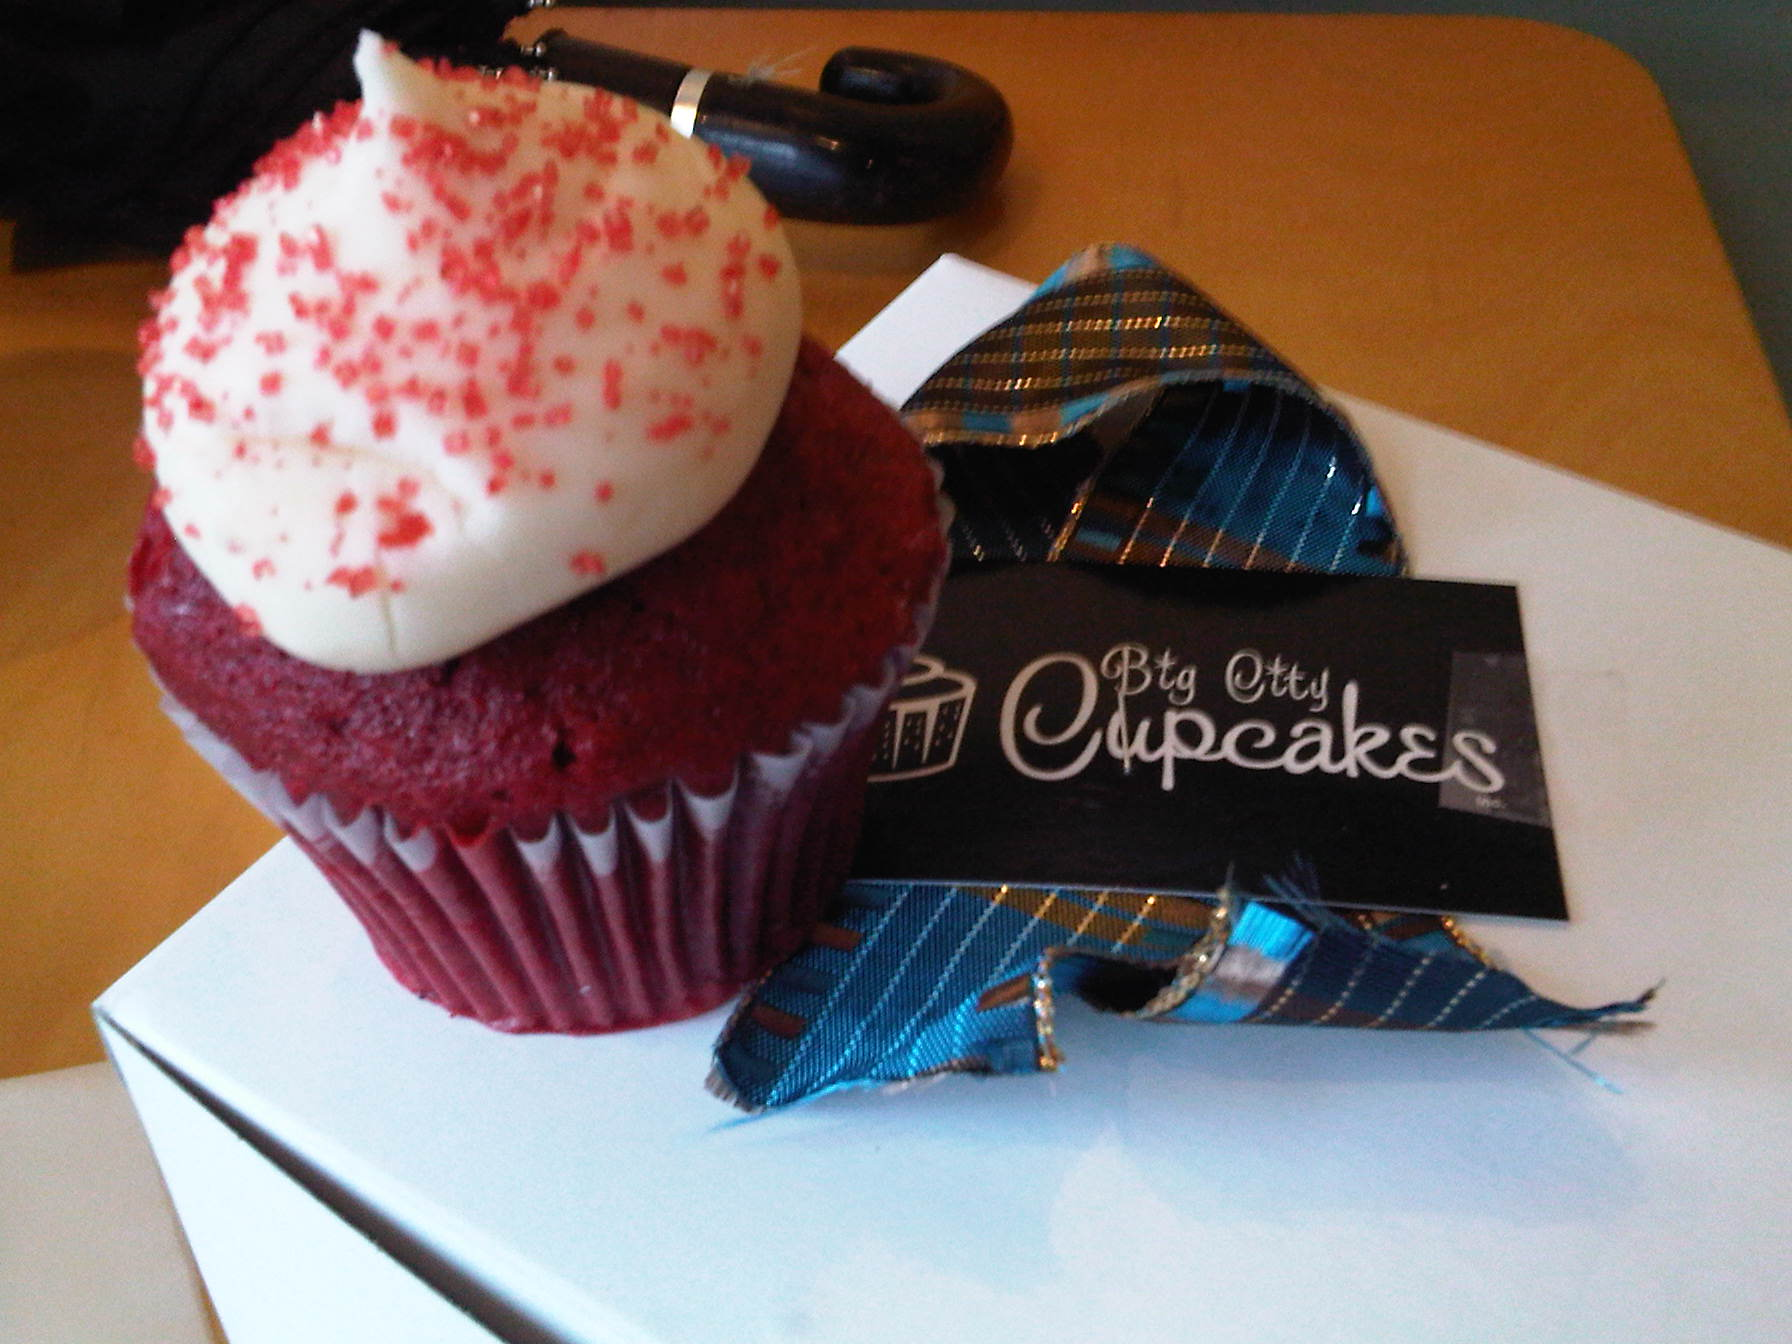 Food Punk » Cupcakes Aint Just For Kids: Big City Cupcakes